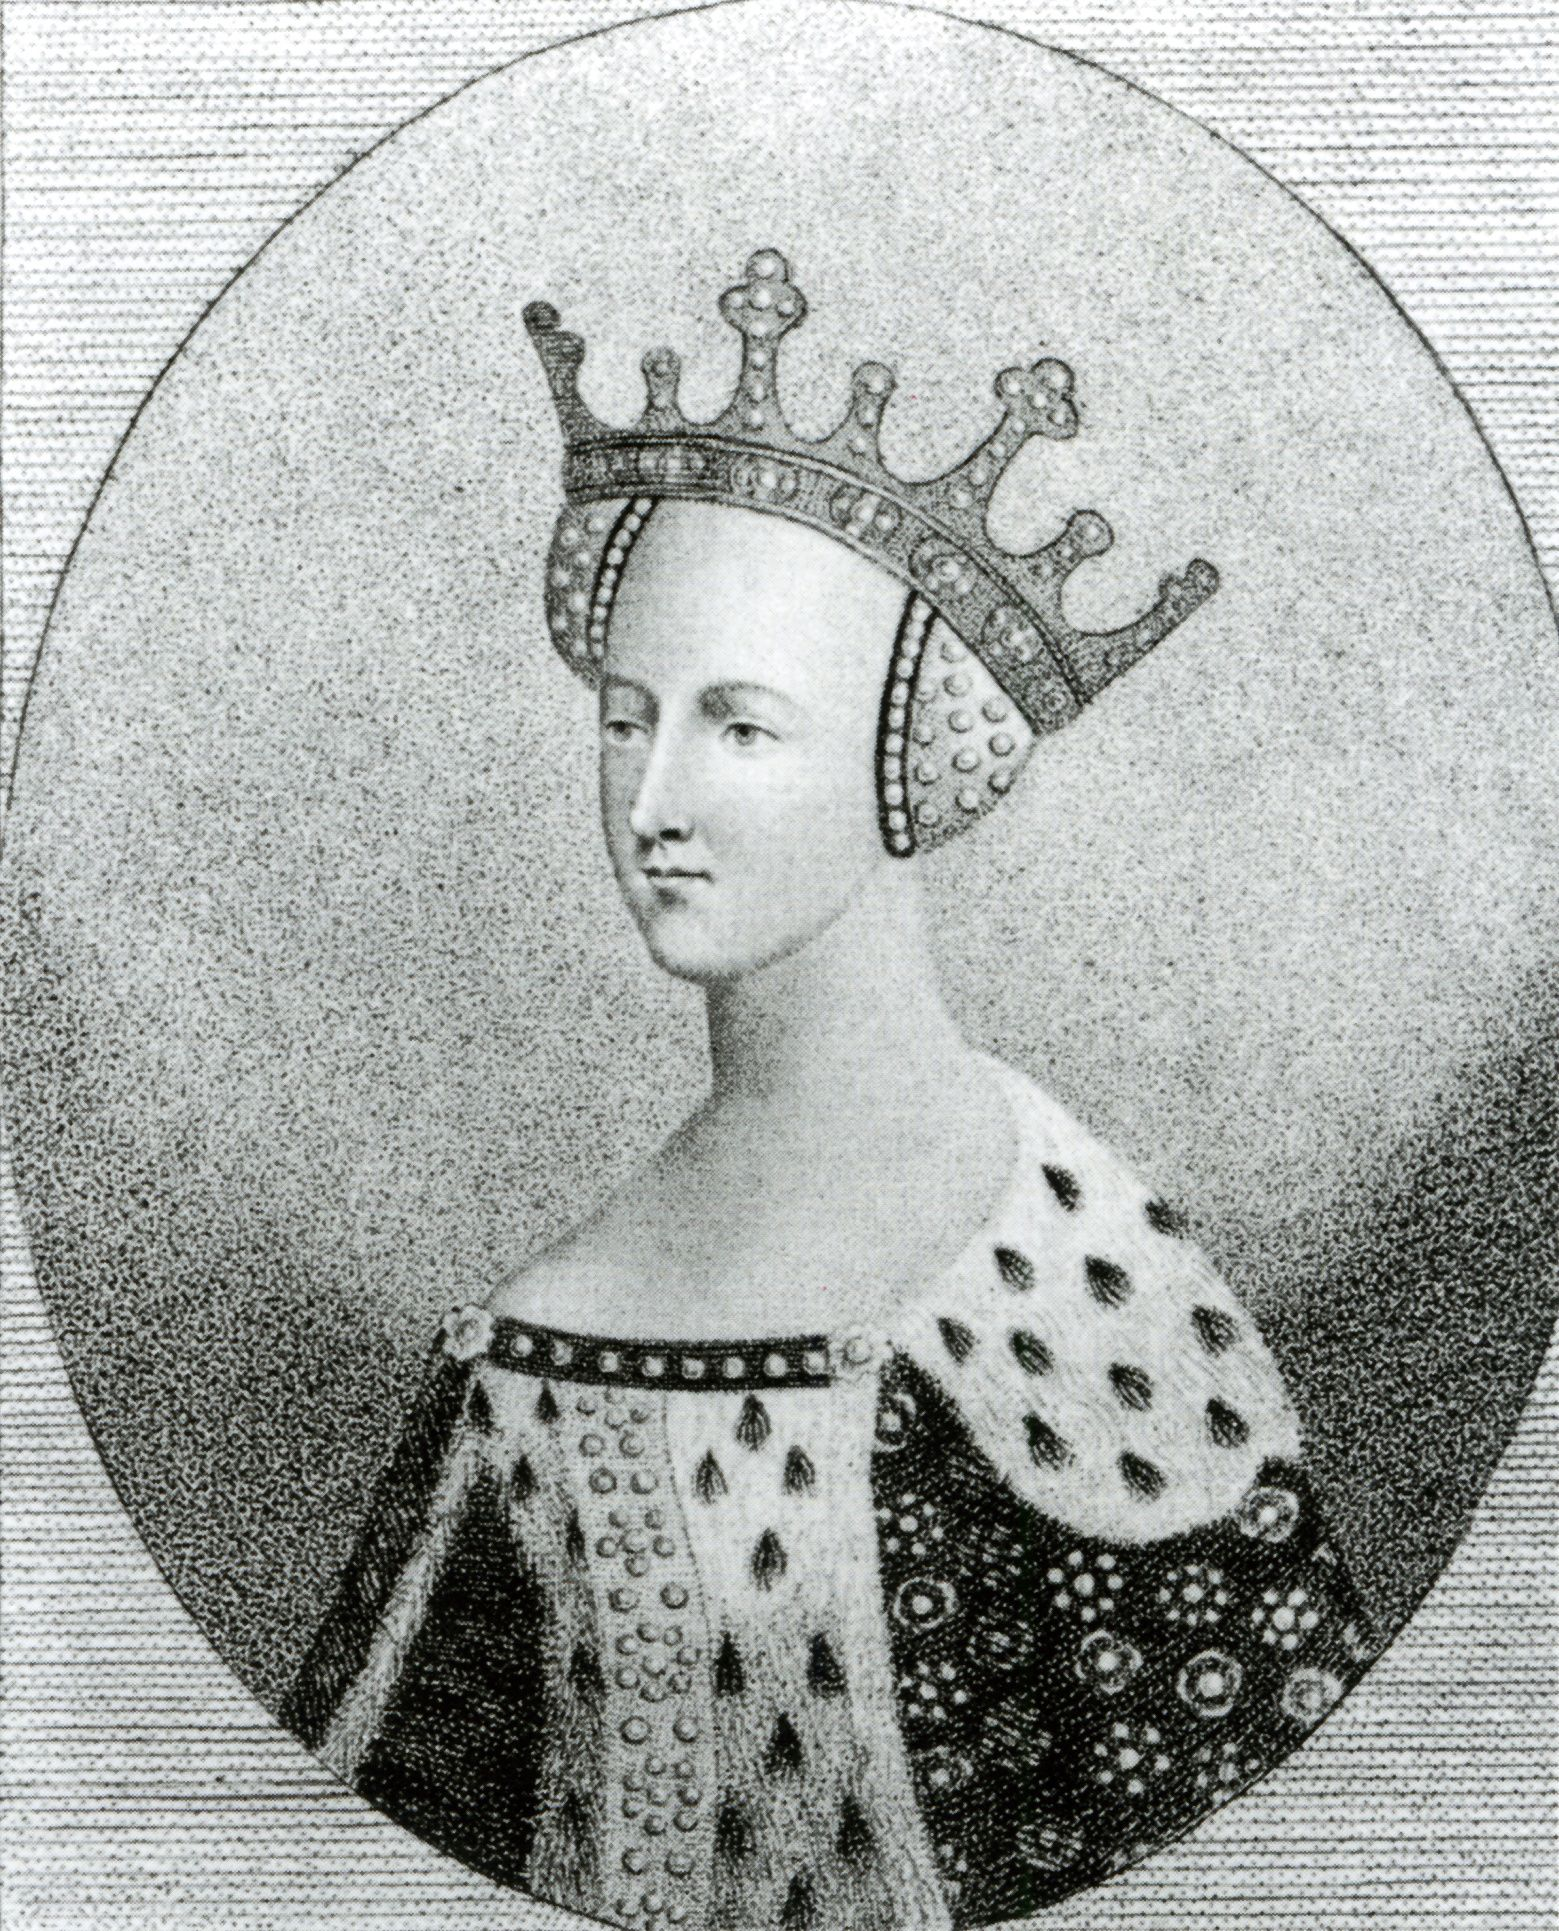 """Henry V of England's Queen, Catherine of France, 1401-37. Unknown engraver, 18th century. Engraving, 19 x 14cm (7 1/2 x 5 1/2""""). National Portrait Gallery (RN27247). National Portrait Gallery, London: NPG D9396"""